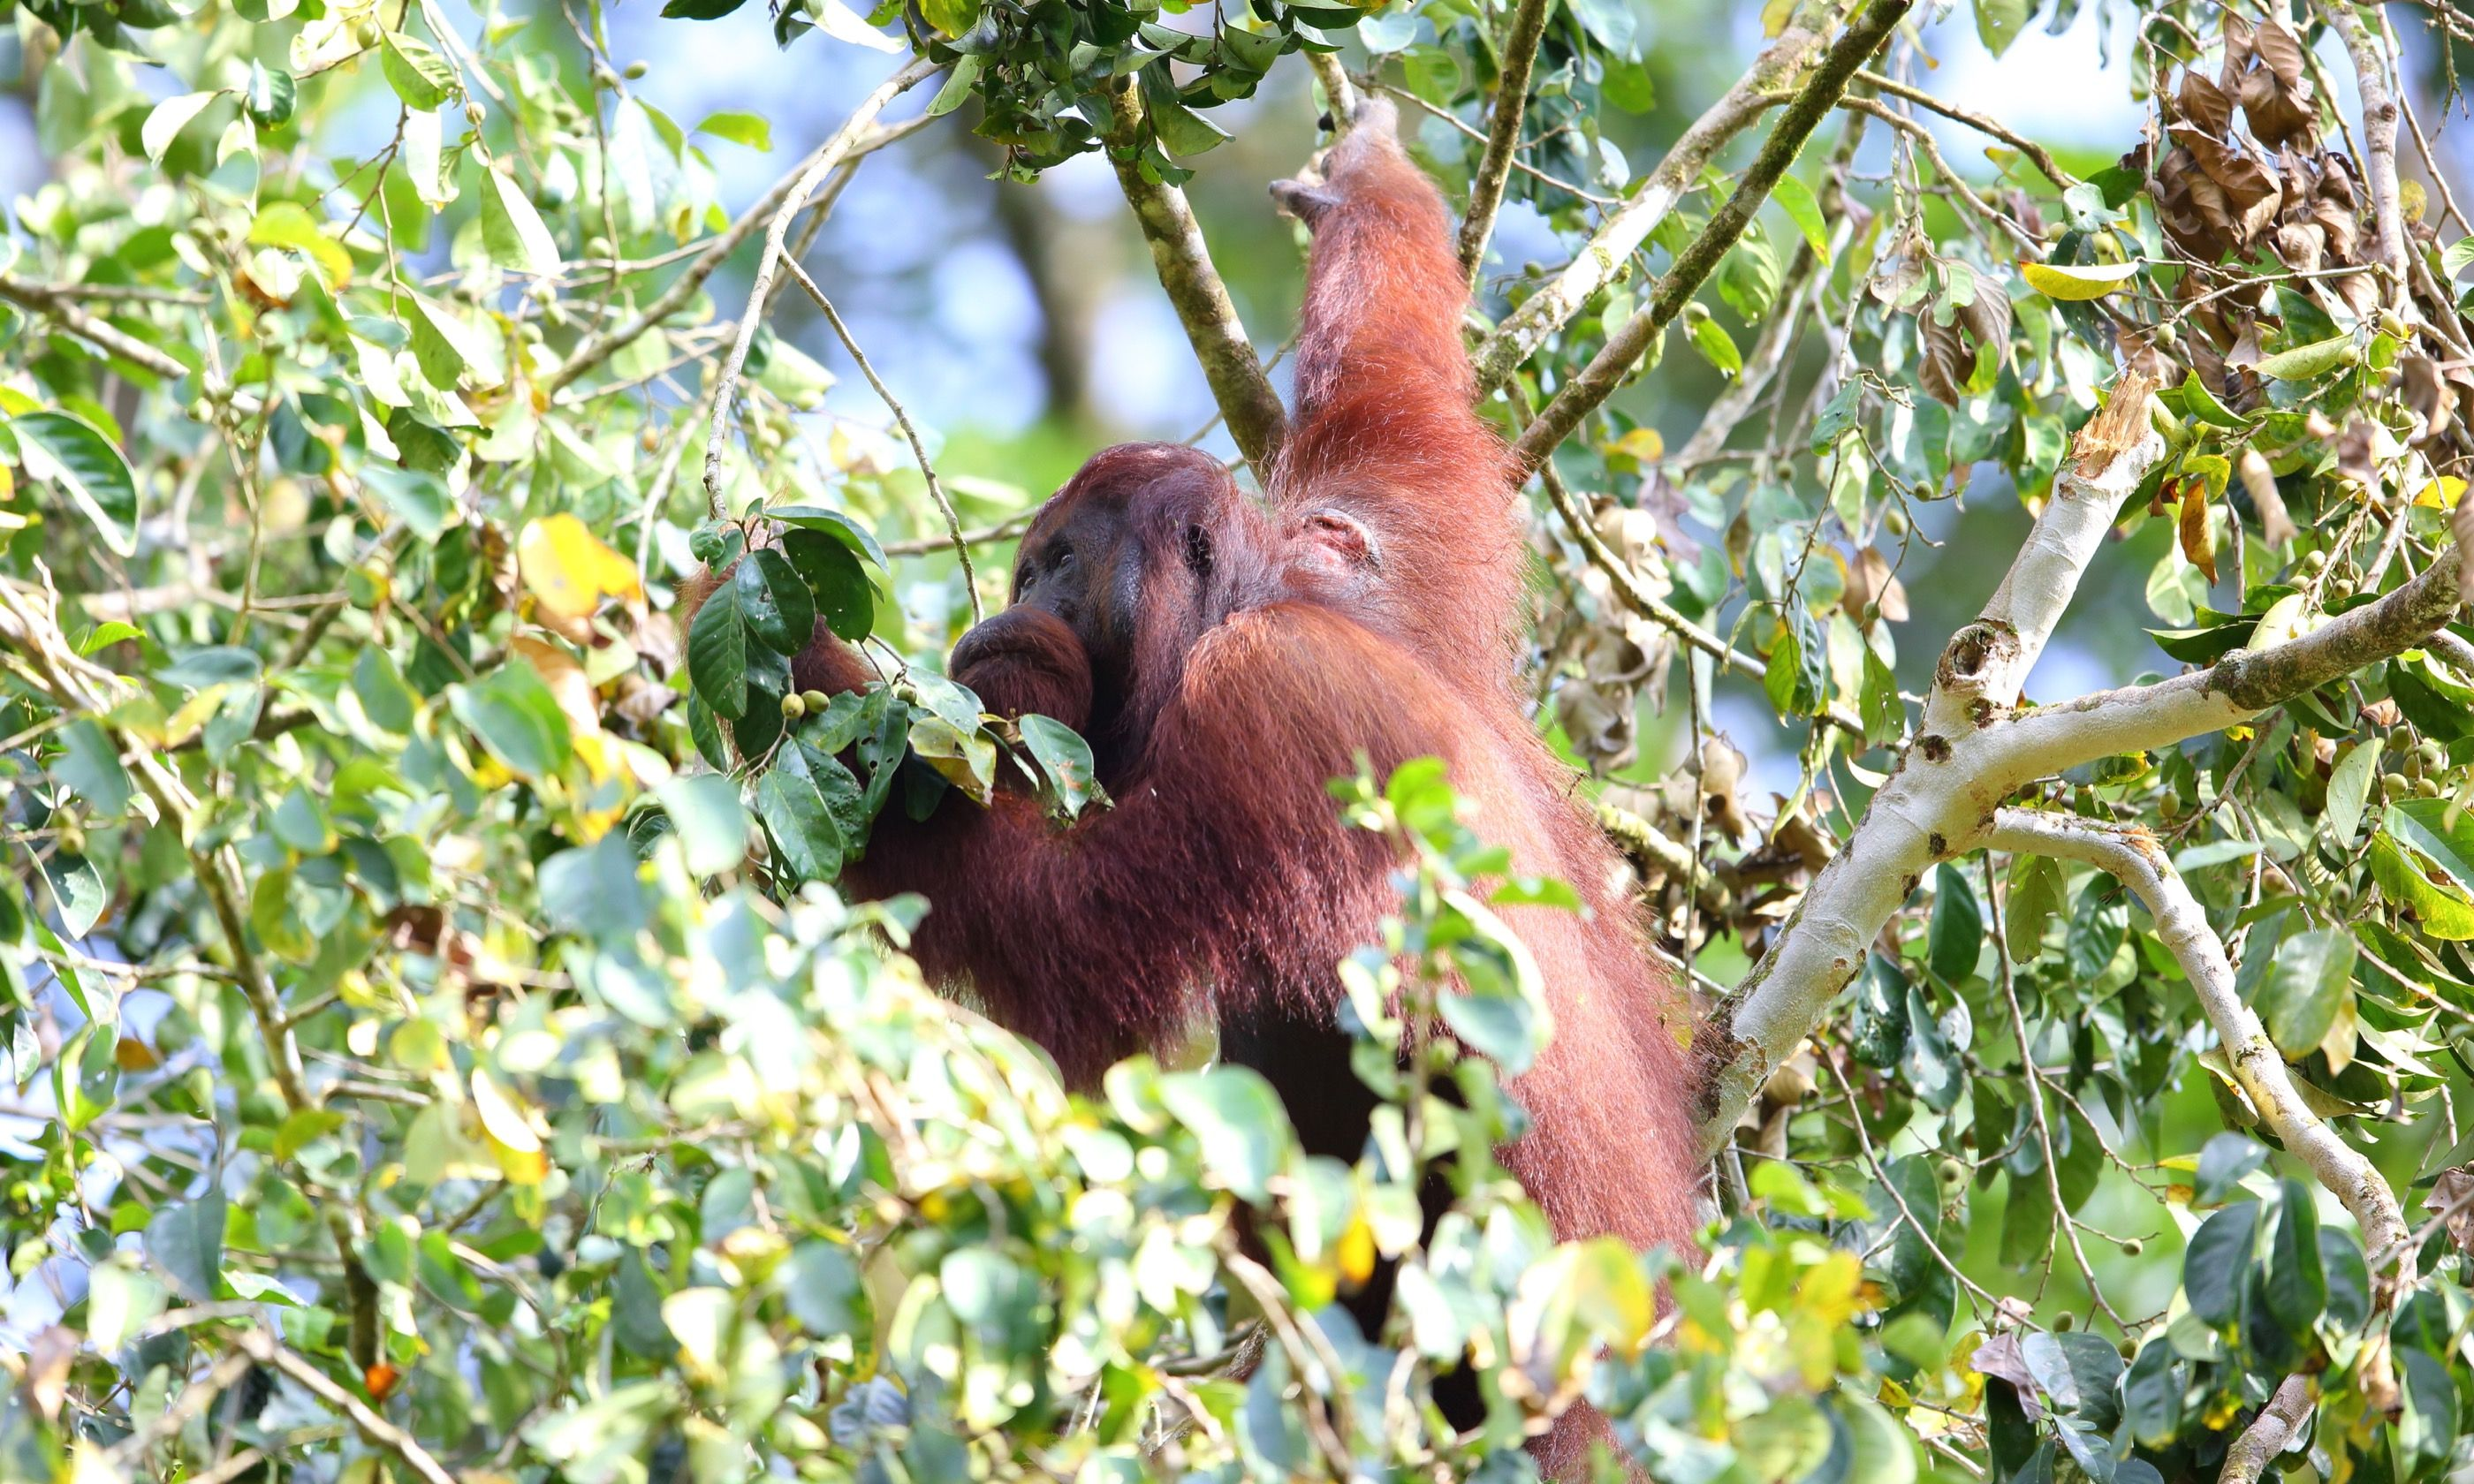 Orangutan foraging in the Danum Valley (Dreamstime)